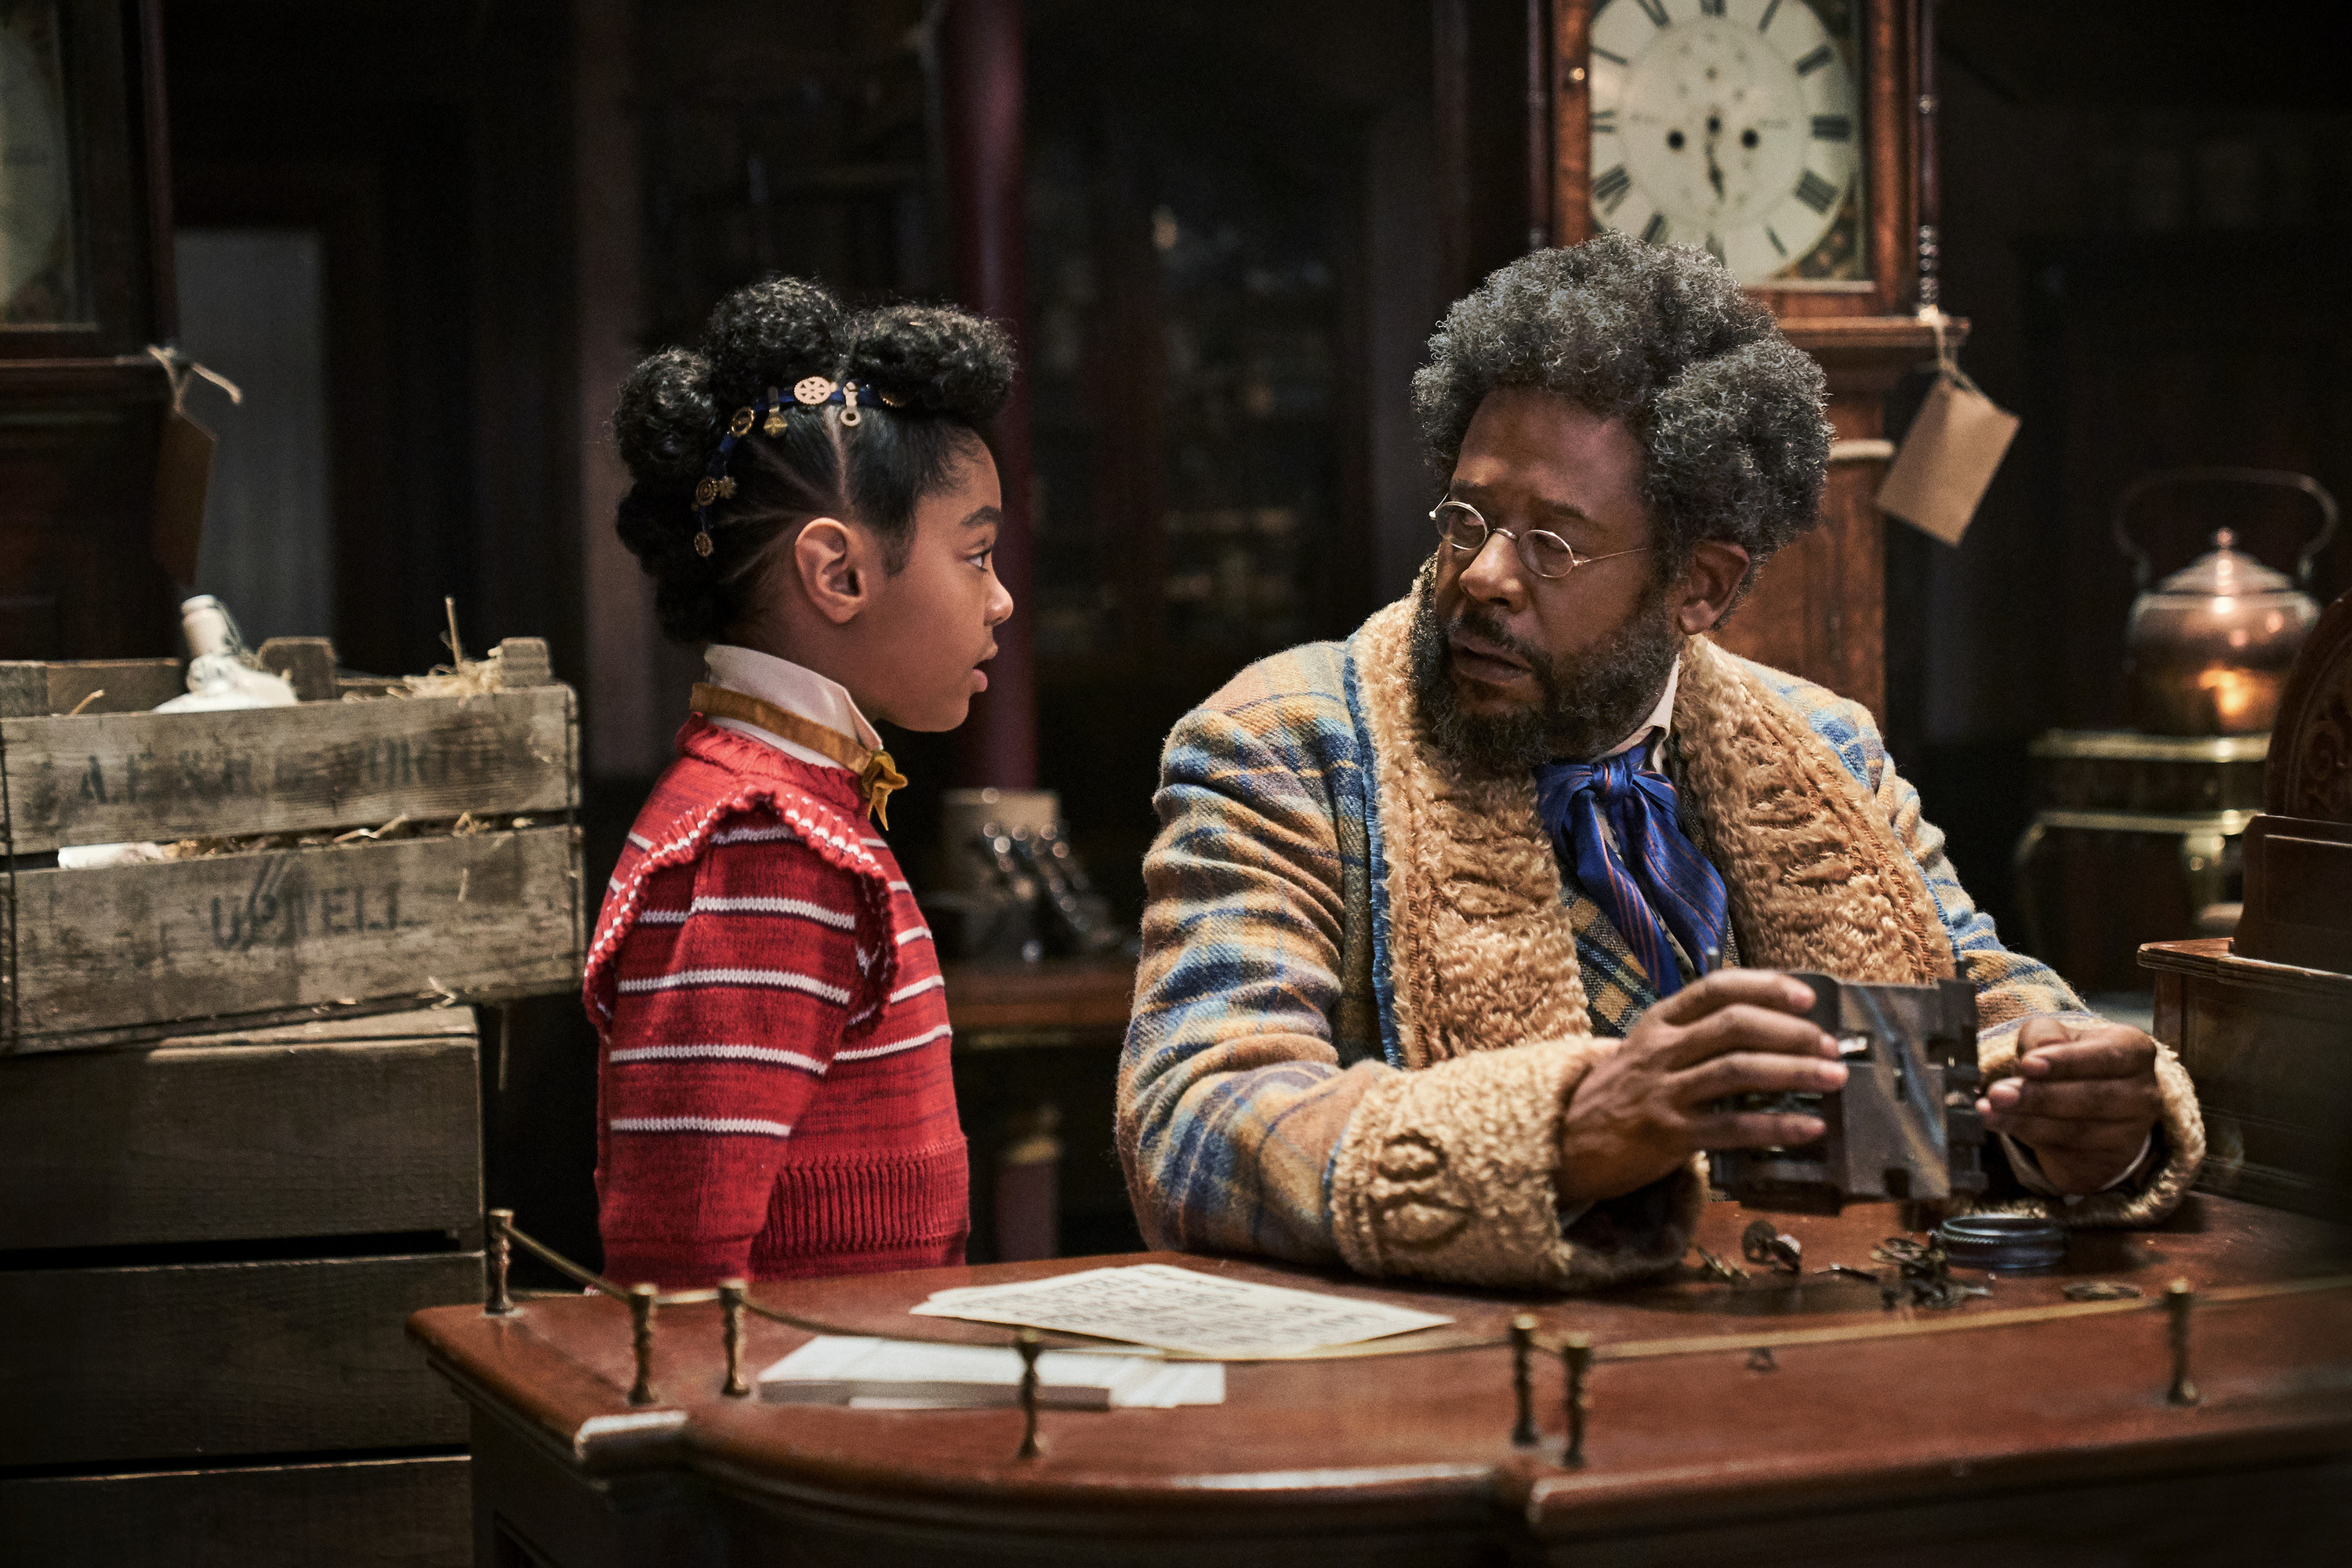 Forest Whitaker dressed in costume talking to a young girl